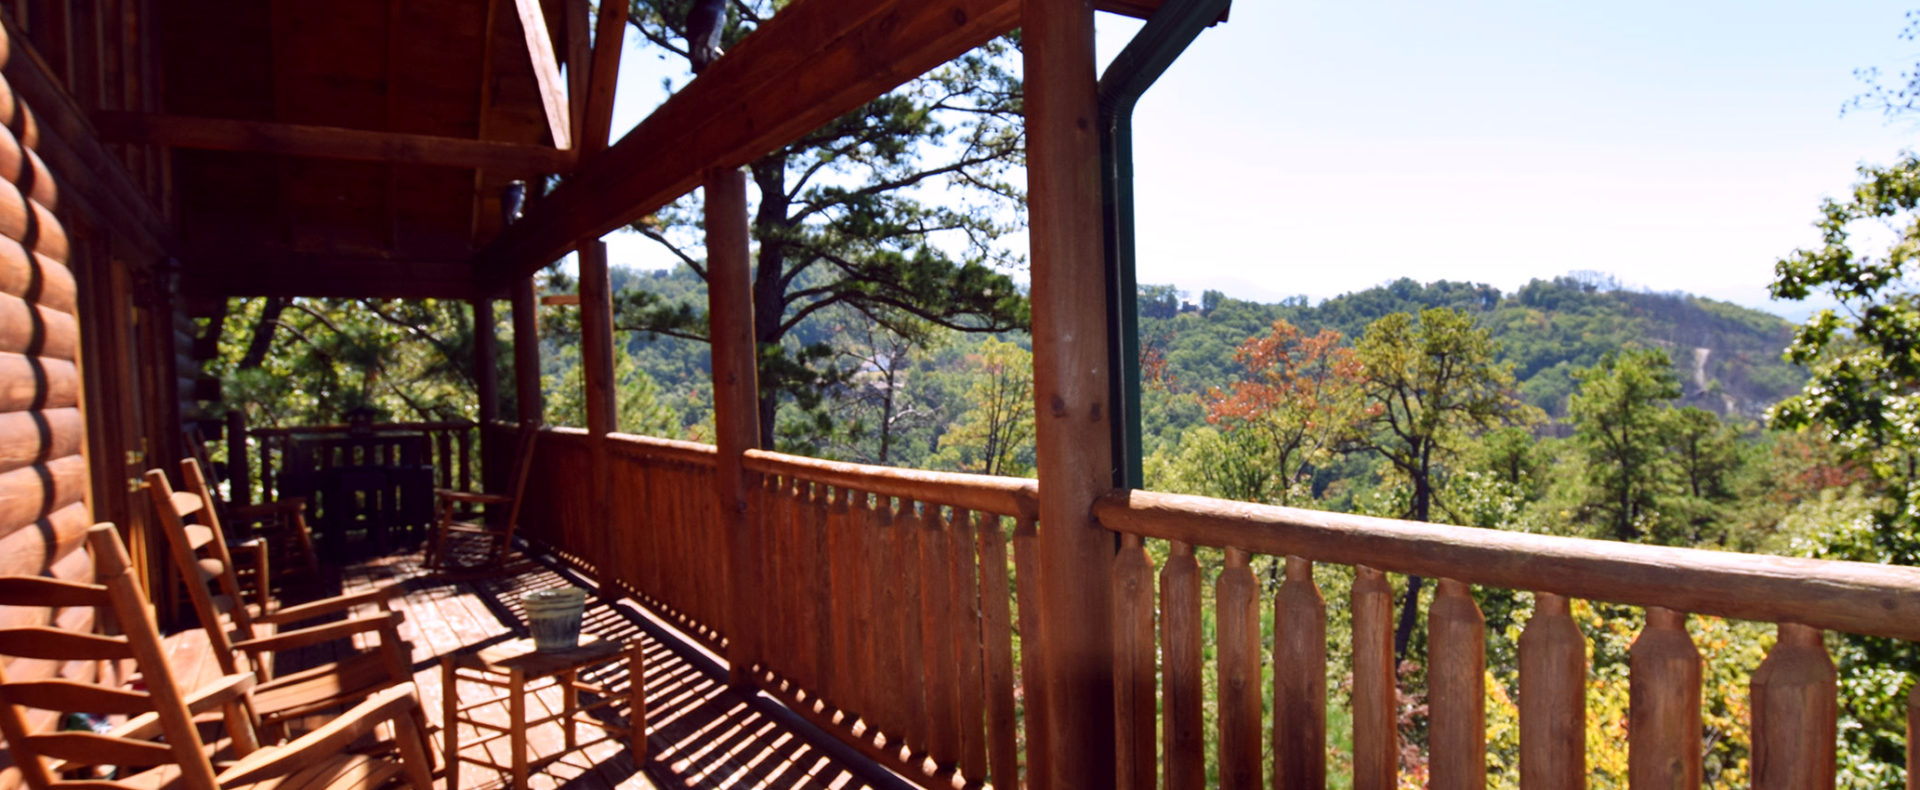 Upper porch with rockers, Shaconage - Arbors Vacation rentals Cabin. Pigeon Forge